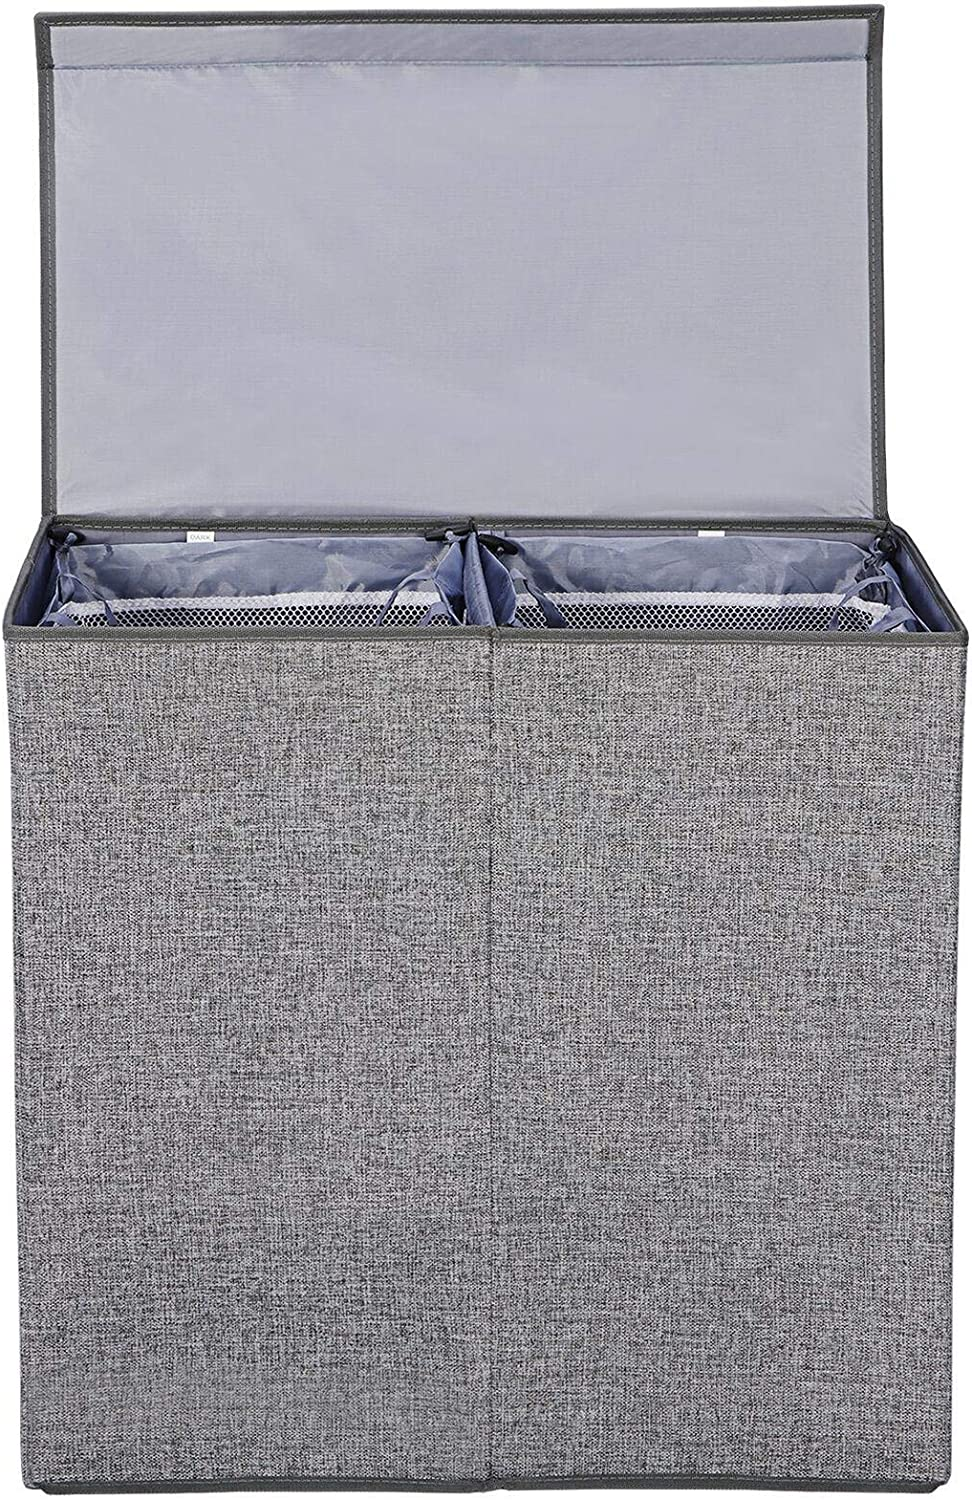 Grey Jacksonville Mall Foldable Double Laundry Hamper with New Free Shipping and Clothes Basket Lid